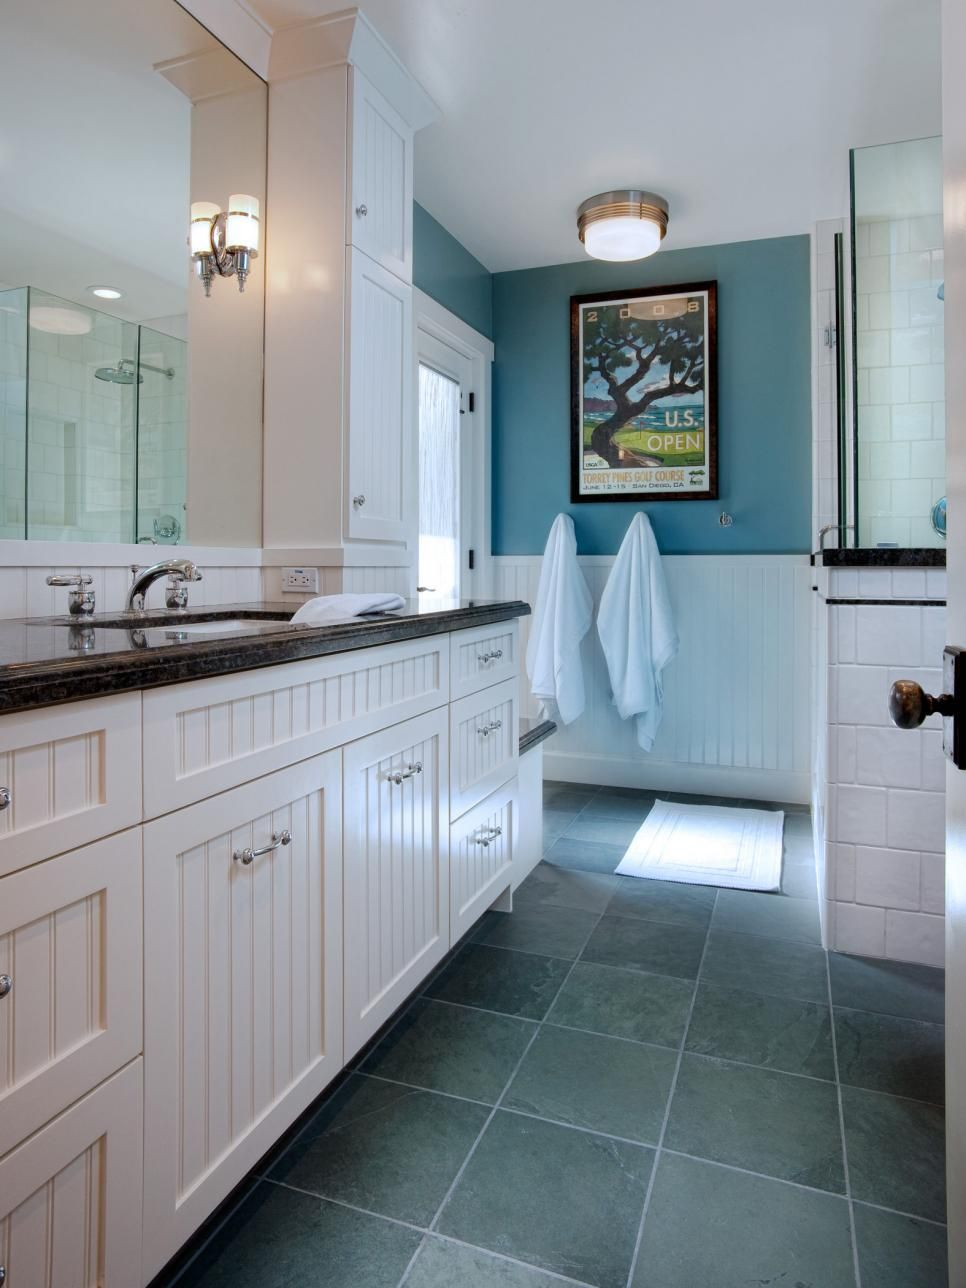 This charming bathroom features white beadboard cabinetry contrasted ...